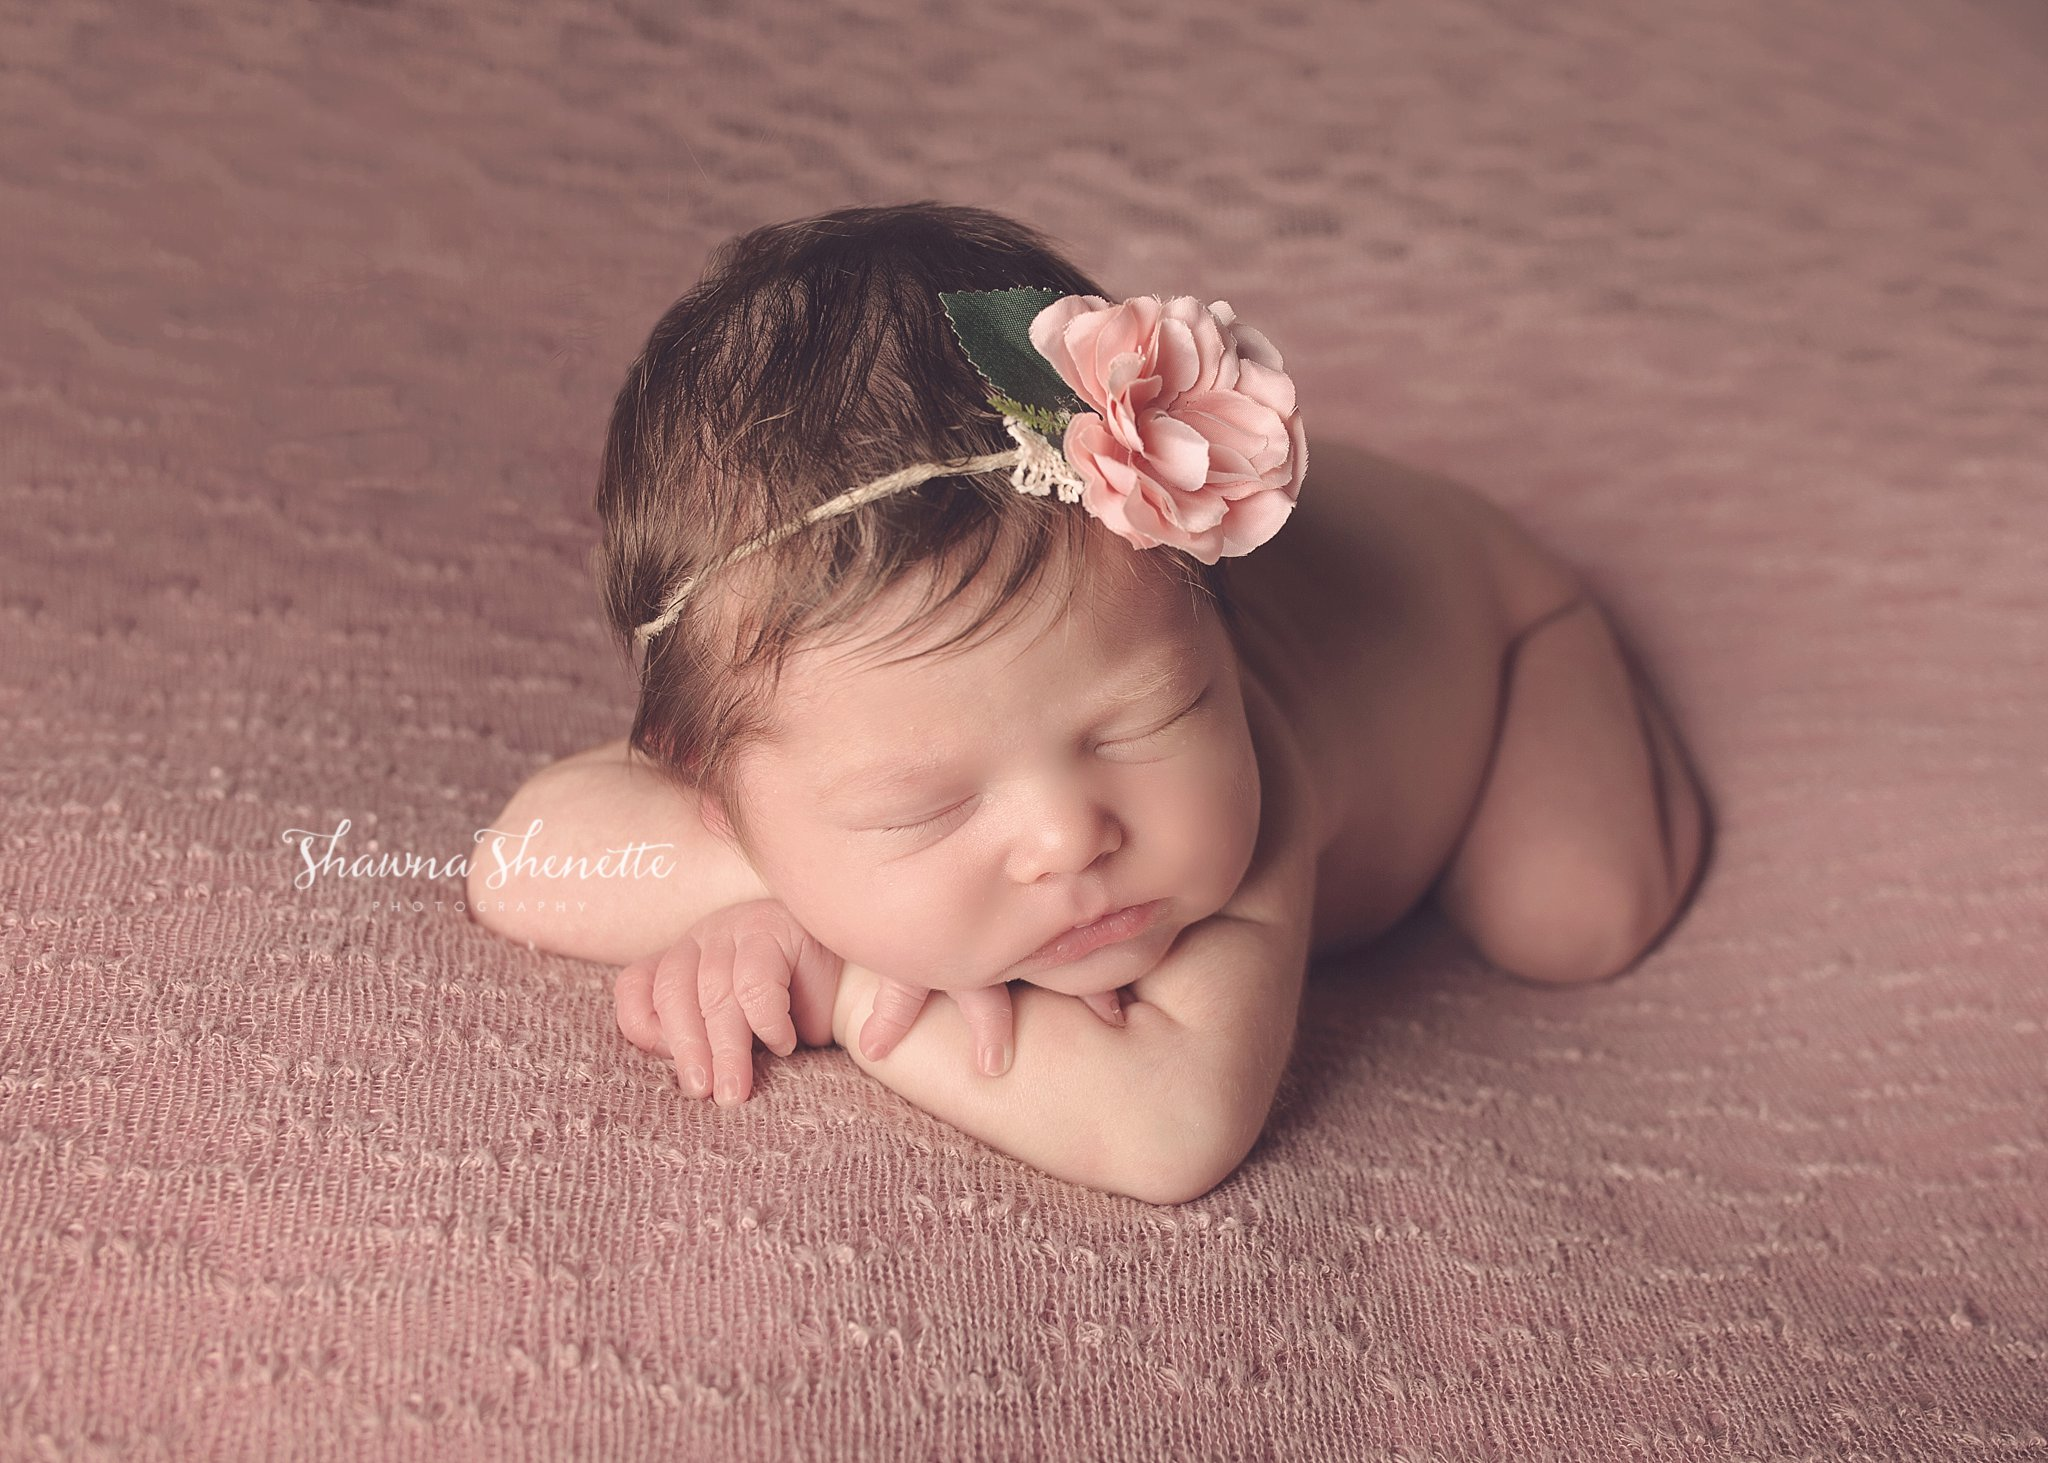 Worcester MA Newborn Baby Girl Photographer Auburn Millbury Sutton Boston Metrowest Newborn Photos Sweet Baby Girl Photos_0026.jpg